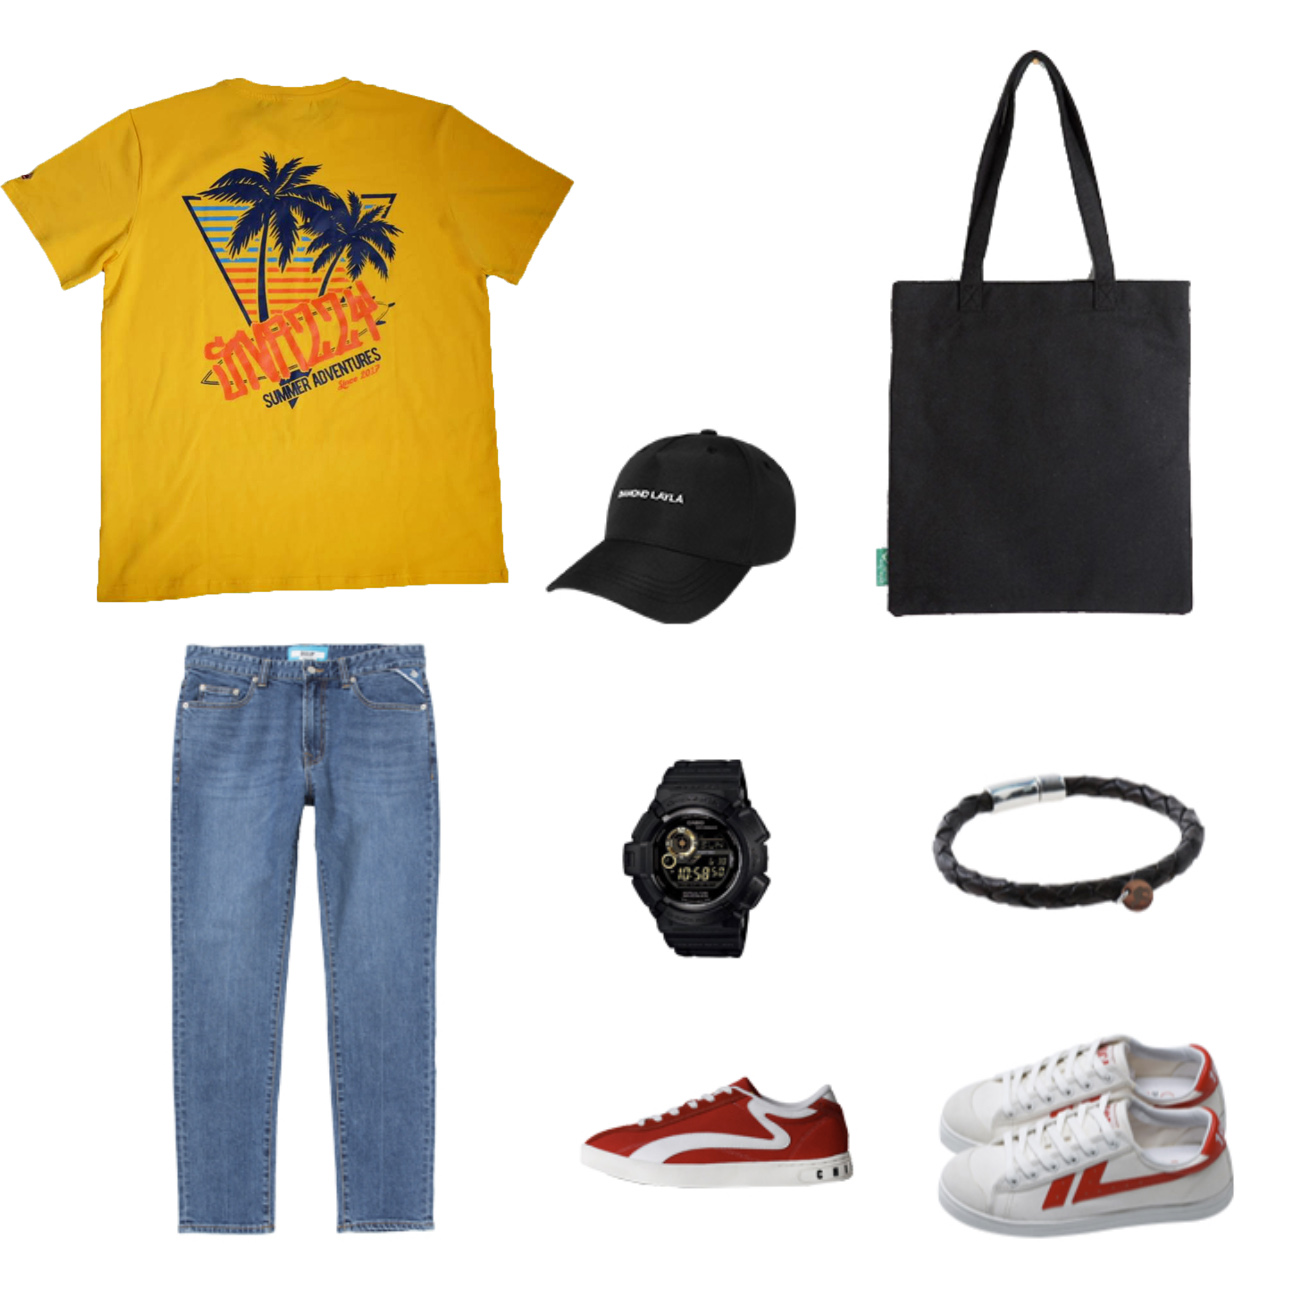 18 Summer Styling